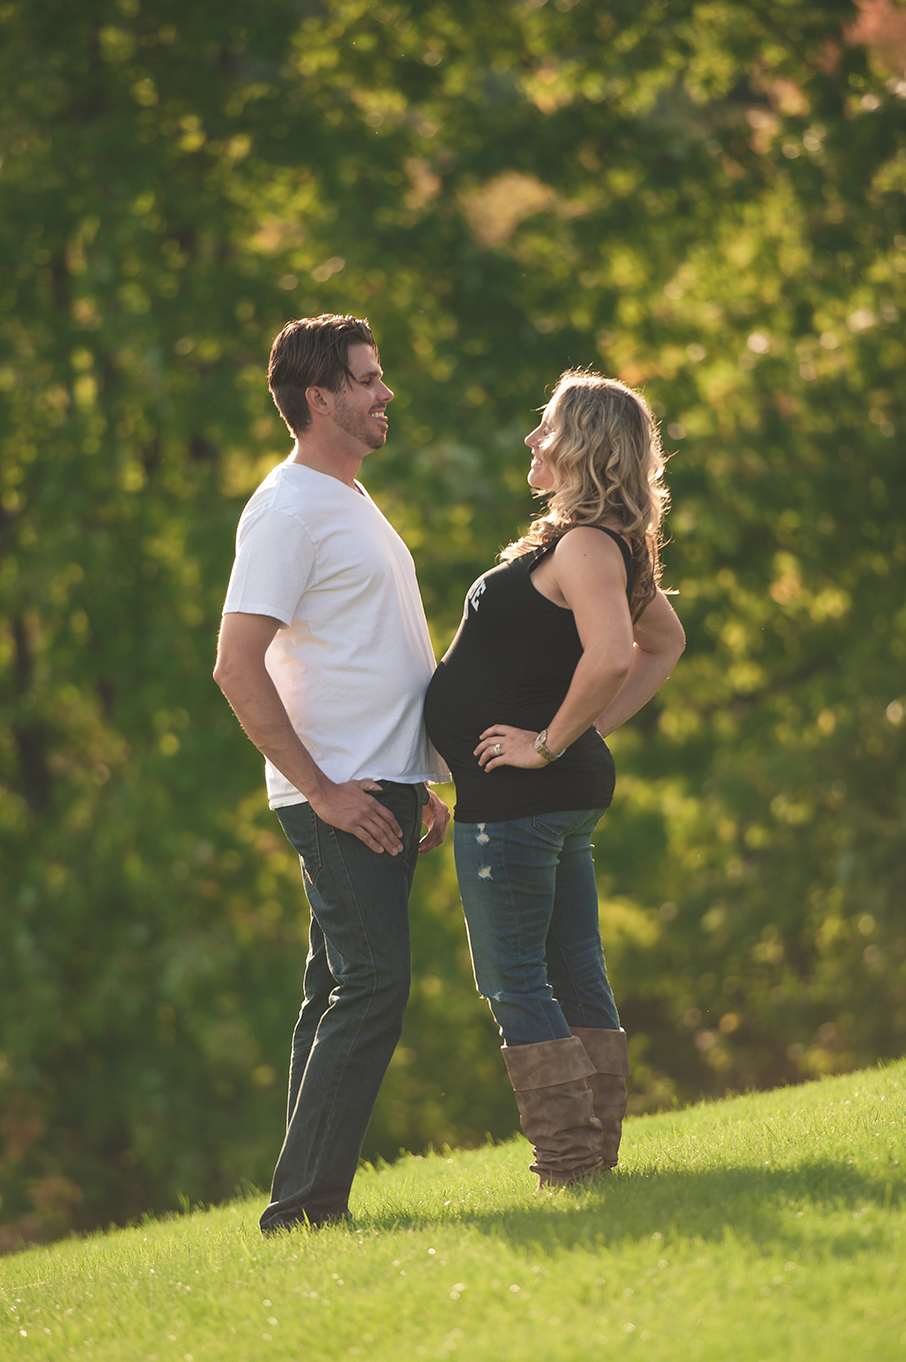 Stephanie&Joe_Maternity-7.jpg